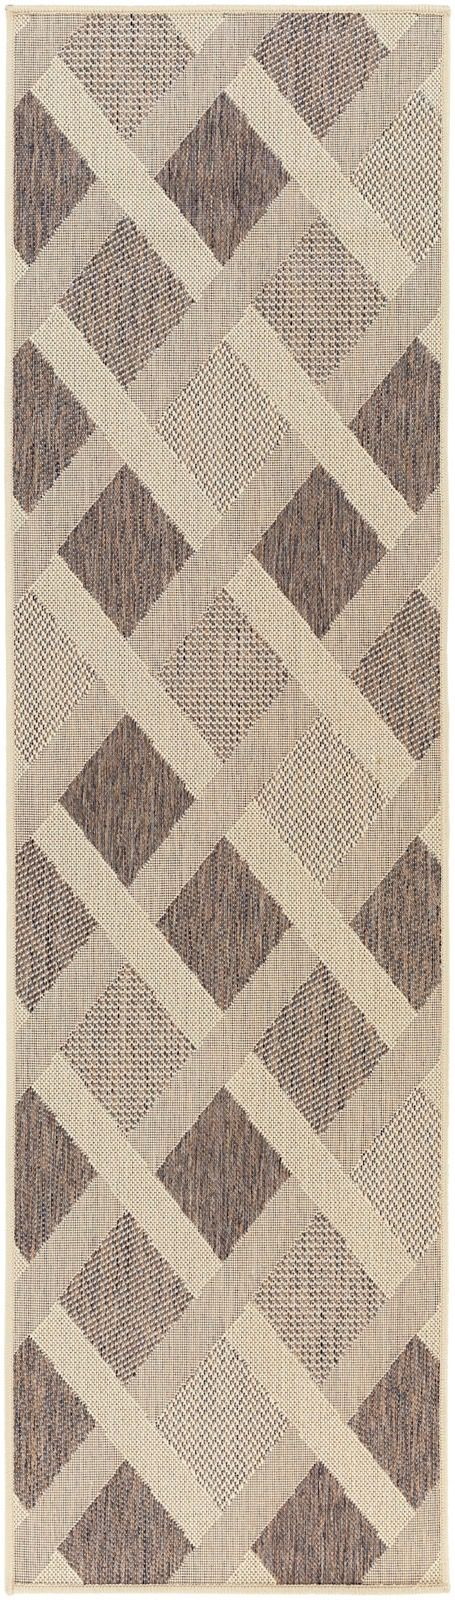 surya zanzibar contemporary area rug collection